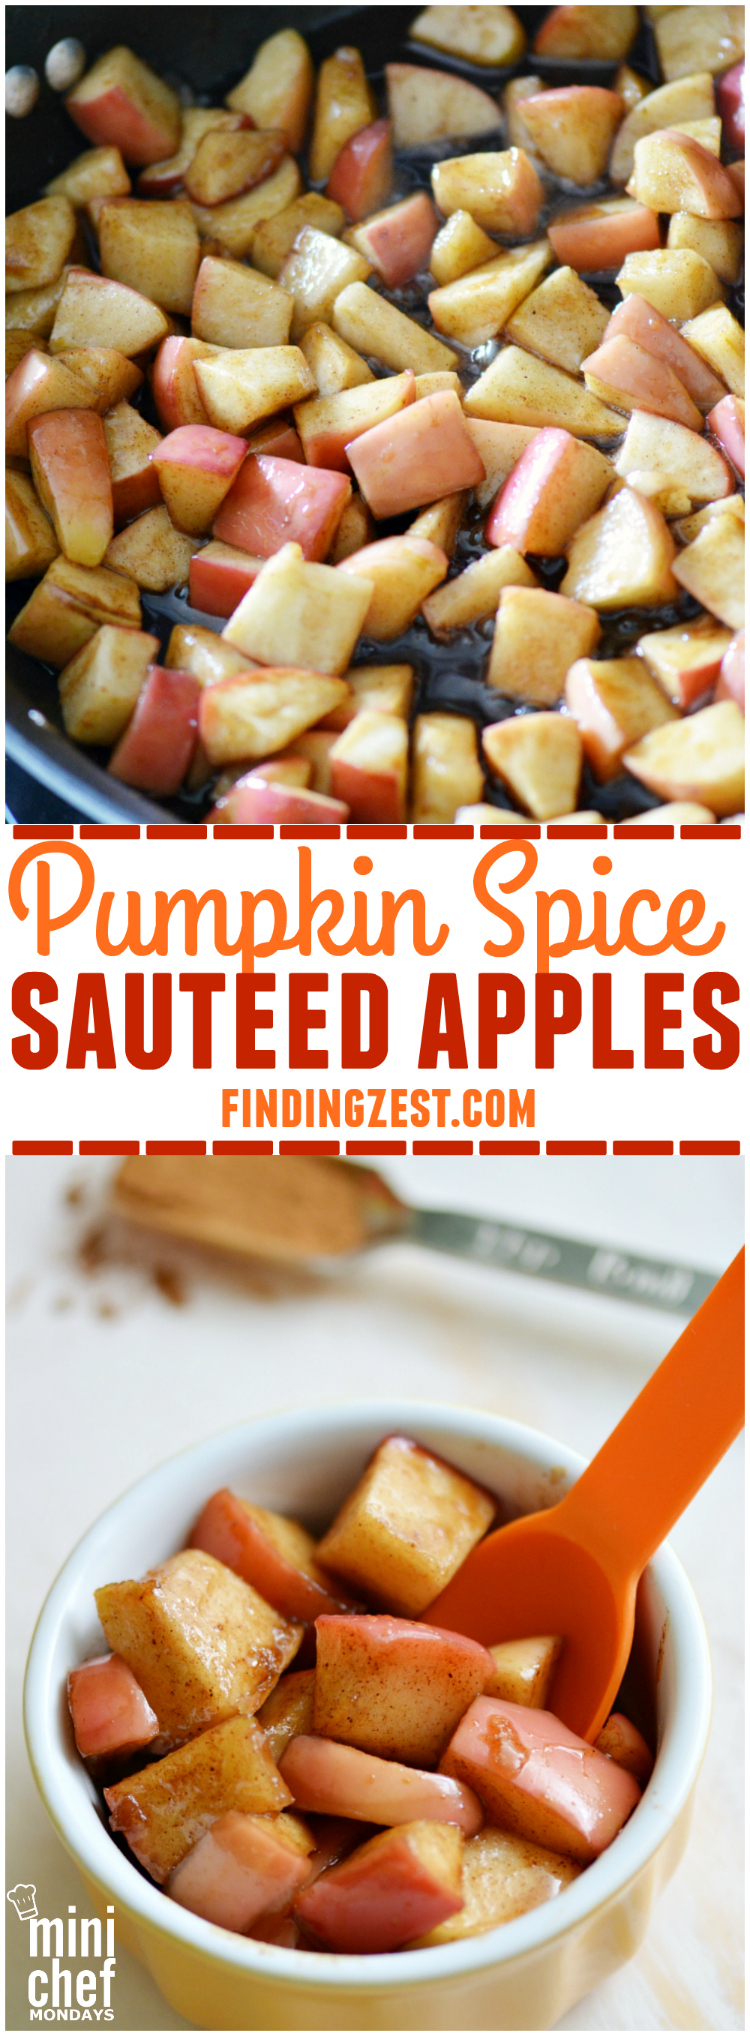 Just 4 ingredients are needed to make these delicious Pumpkin Spice Sauteed Apples. Enjoy them for snack as is or as a topping for ice cream or pancakes!